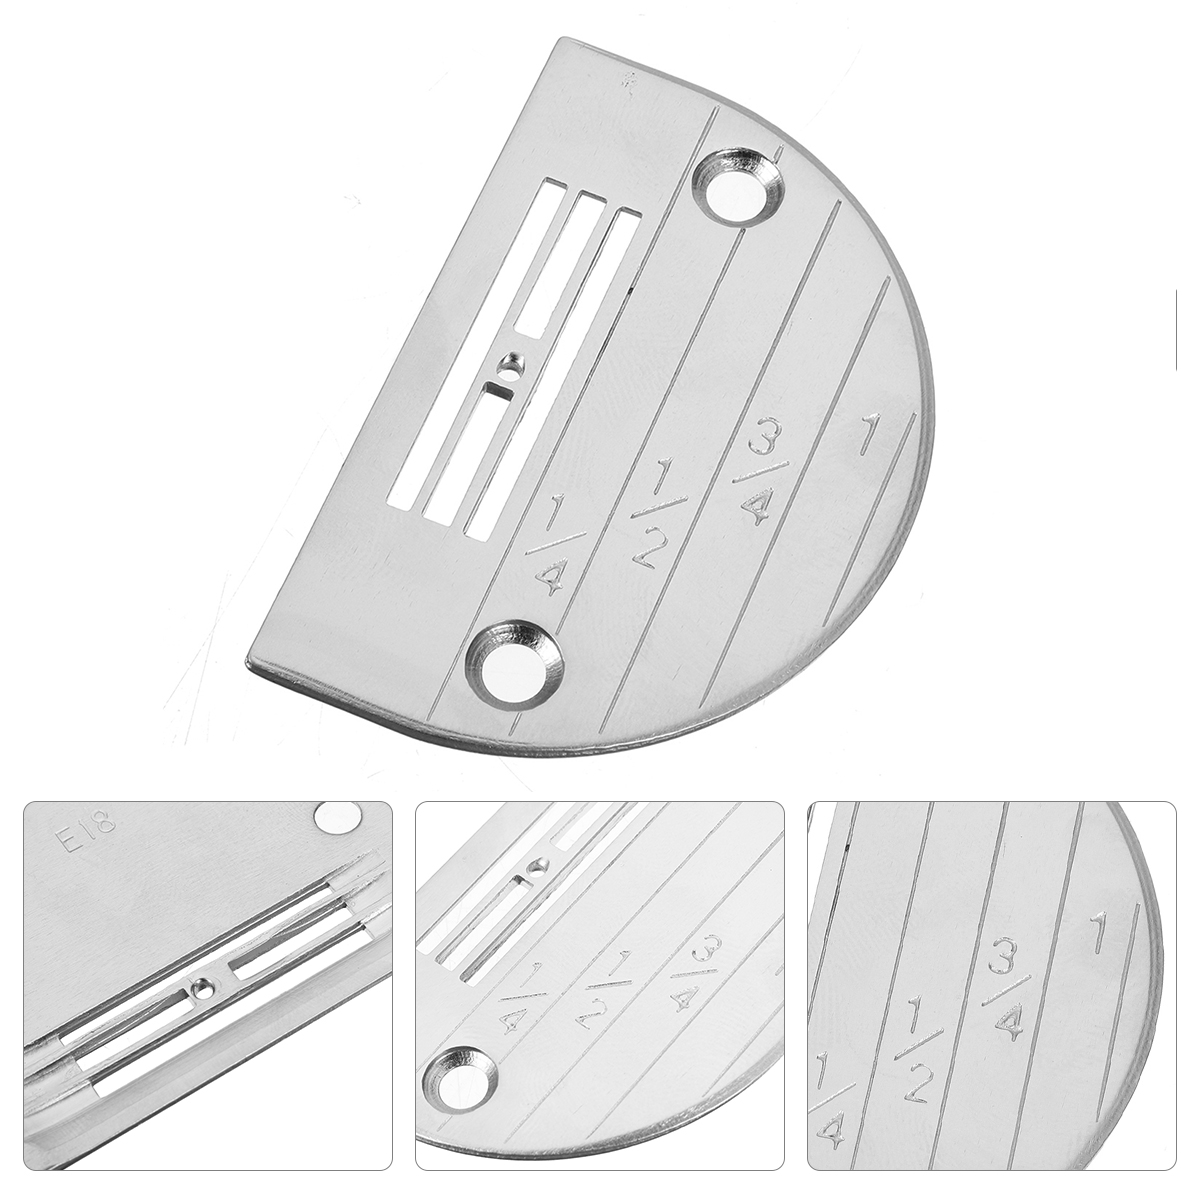 INDUSTRIAL SEWING MACHINE NEEDLE PLATE E18 FOR JUKI BROTHER CONSEW #147150 !